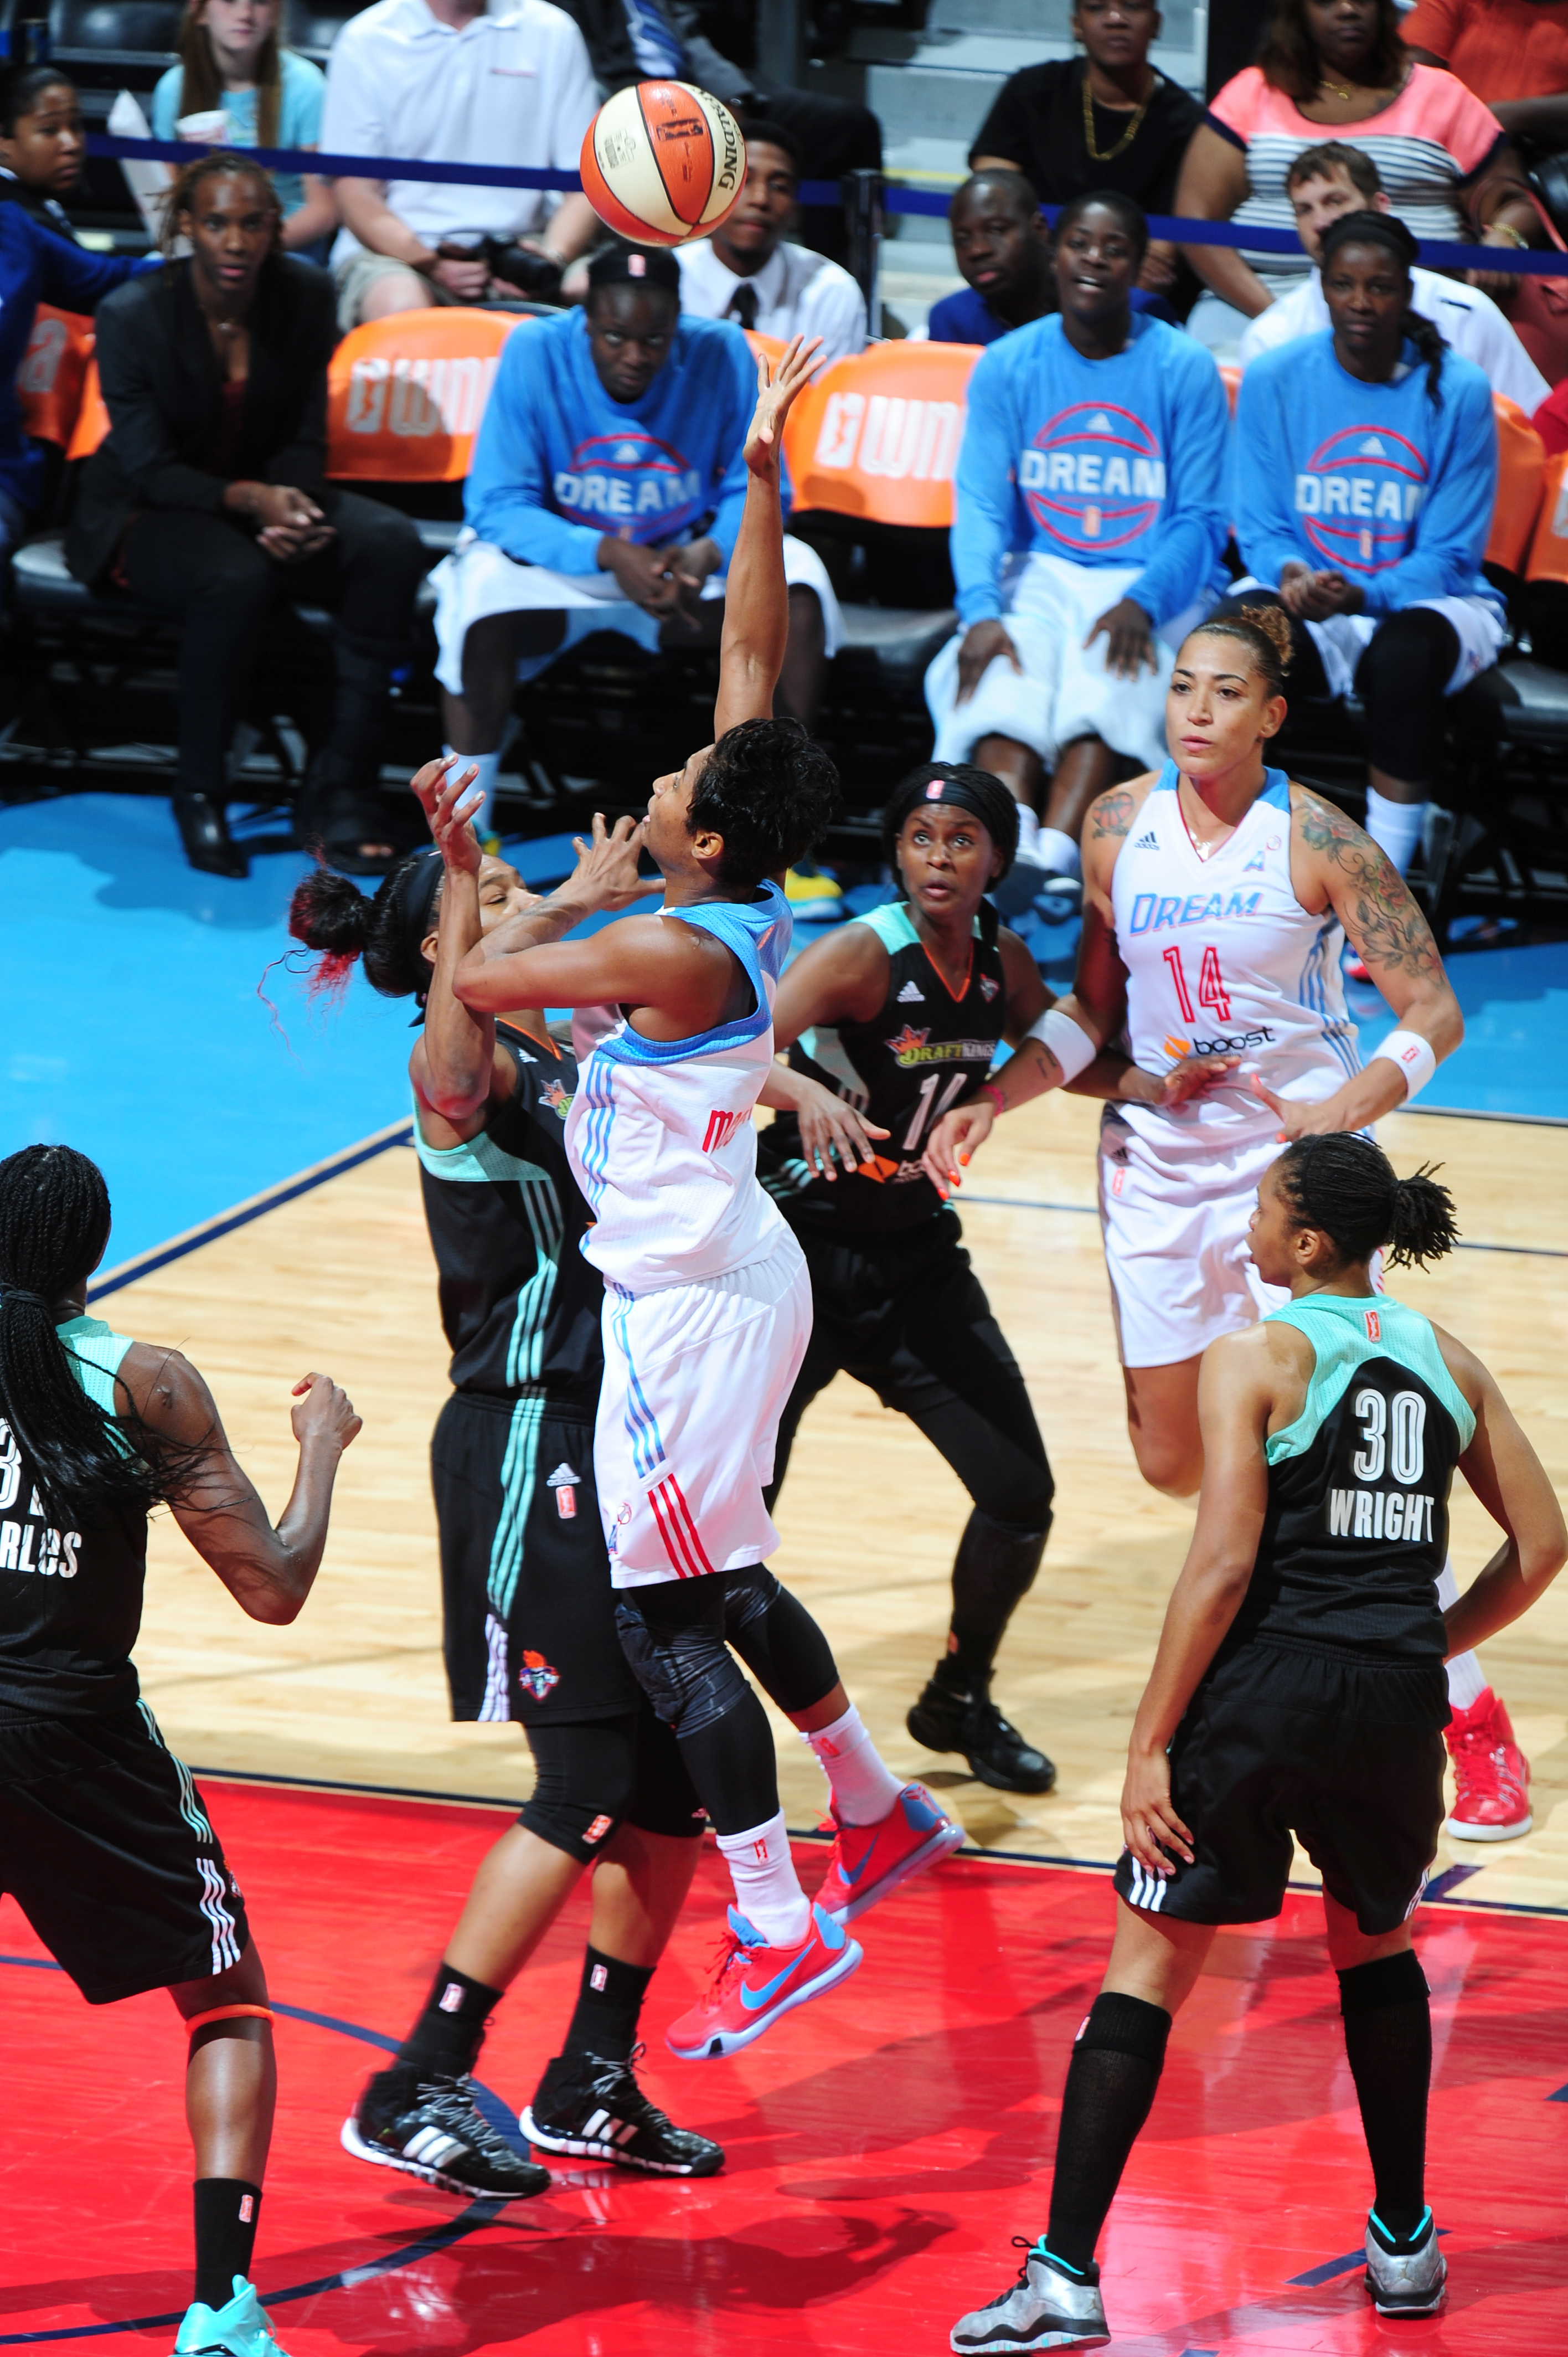 ATLANTA, GA - JULY 12:  Angel McCoughtry #35 of the Atlanta Dream shoots the ball against the New York Liberty in a WNBA game on July 12, 2015 at Philips Arena in Atlanta, Georgia.  (Photo by Scott Cunningham/NBAE via Getty Images)